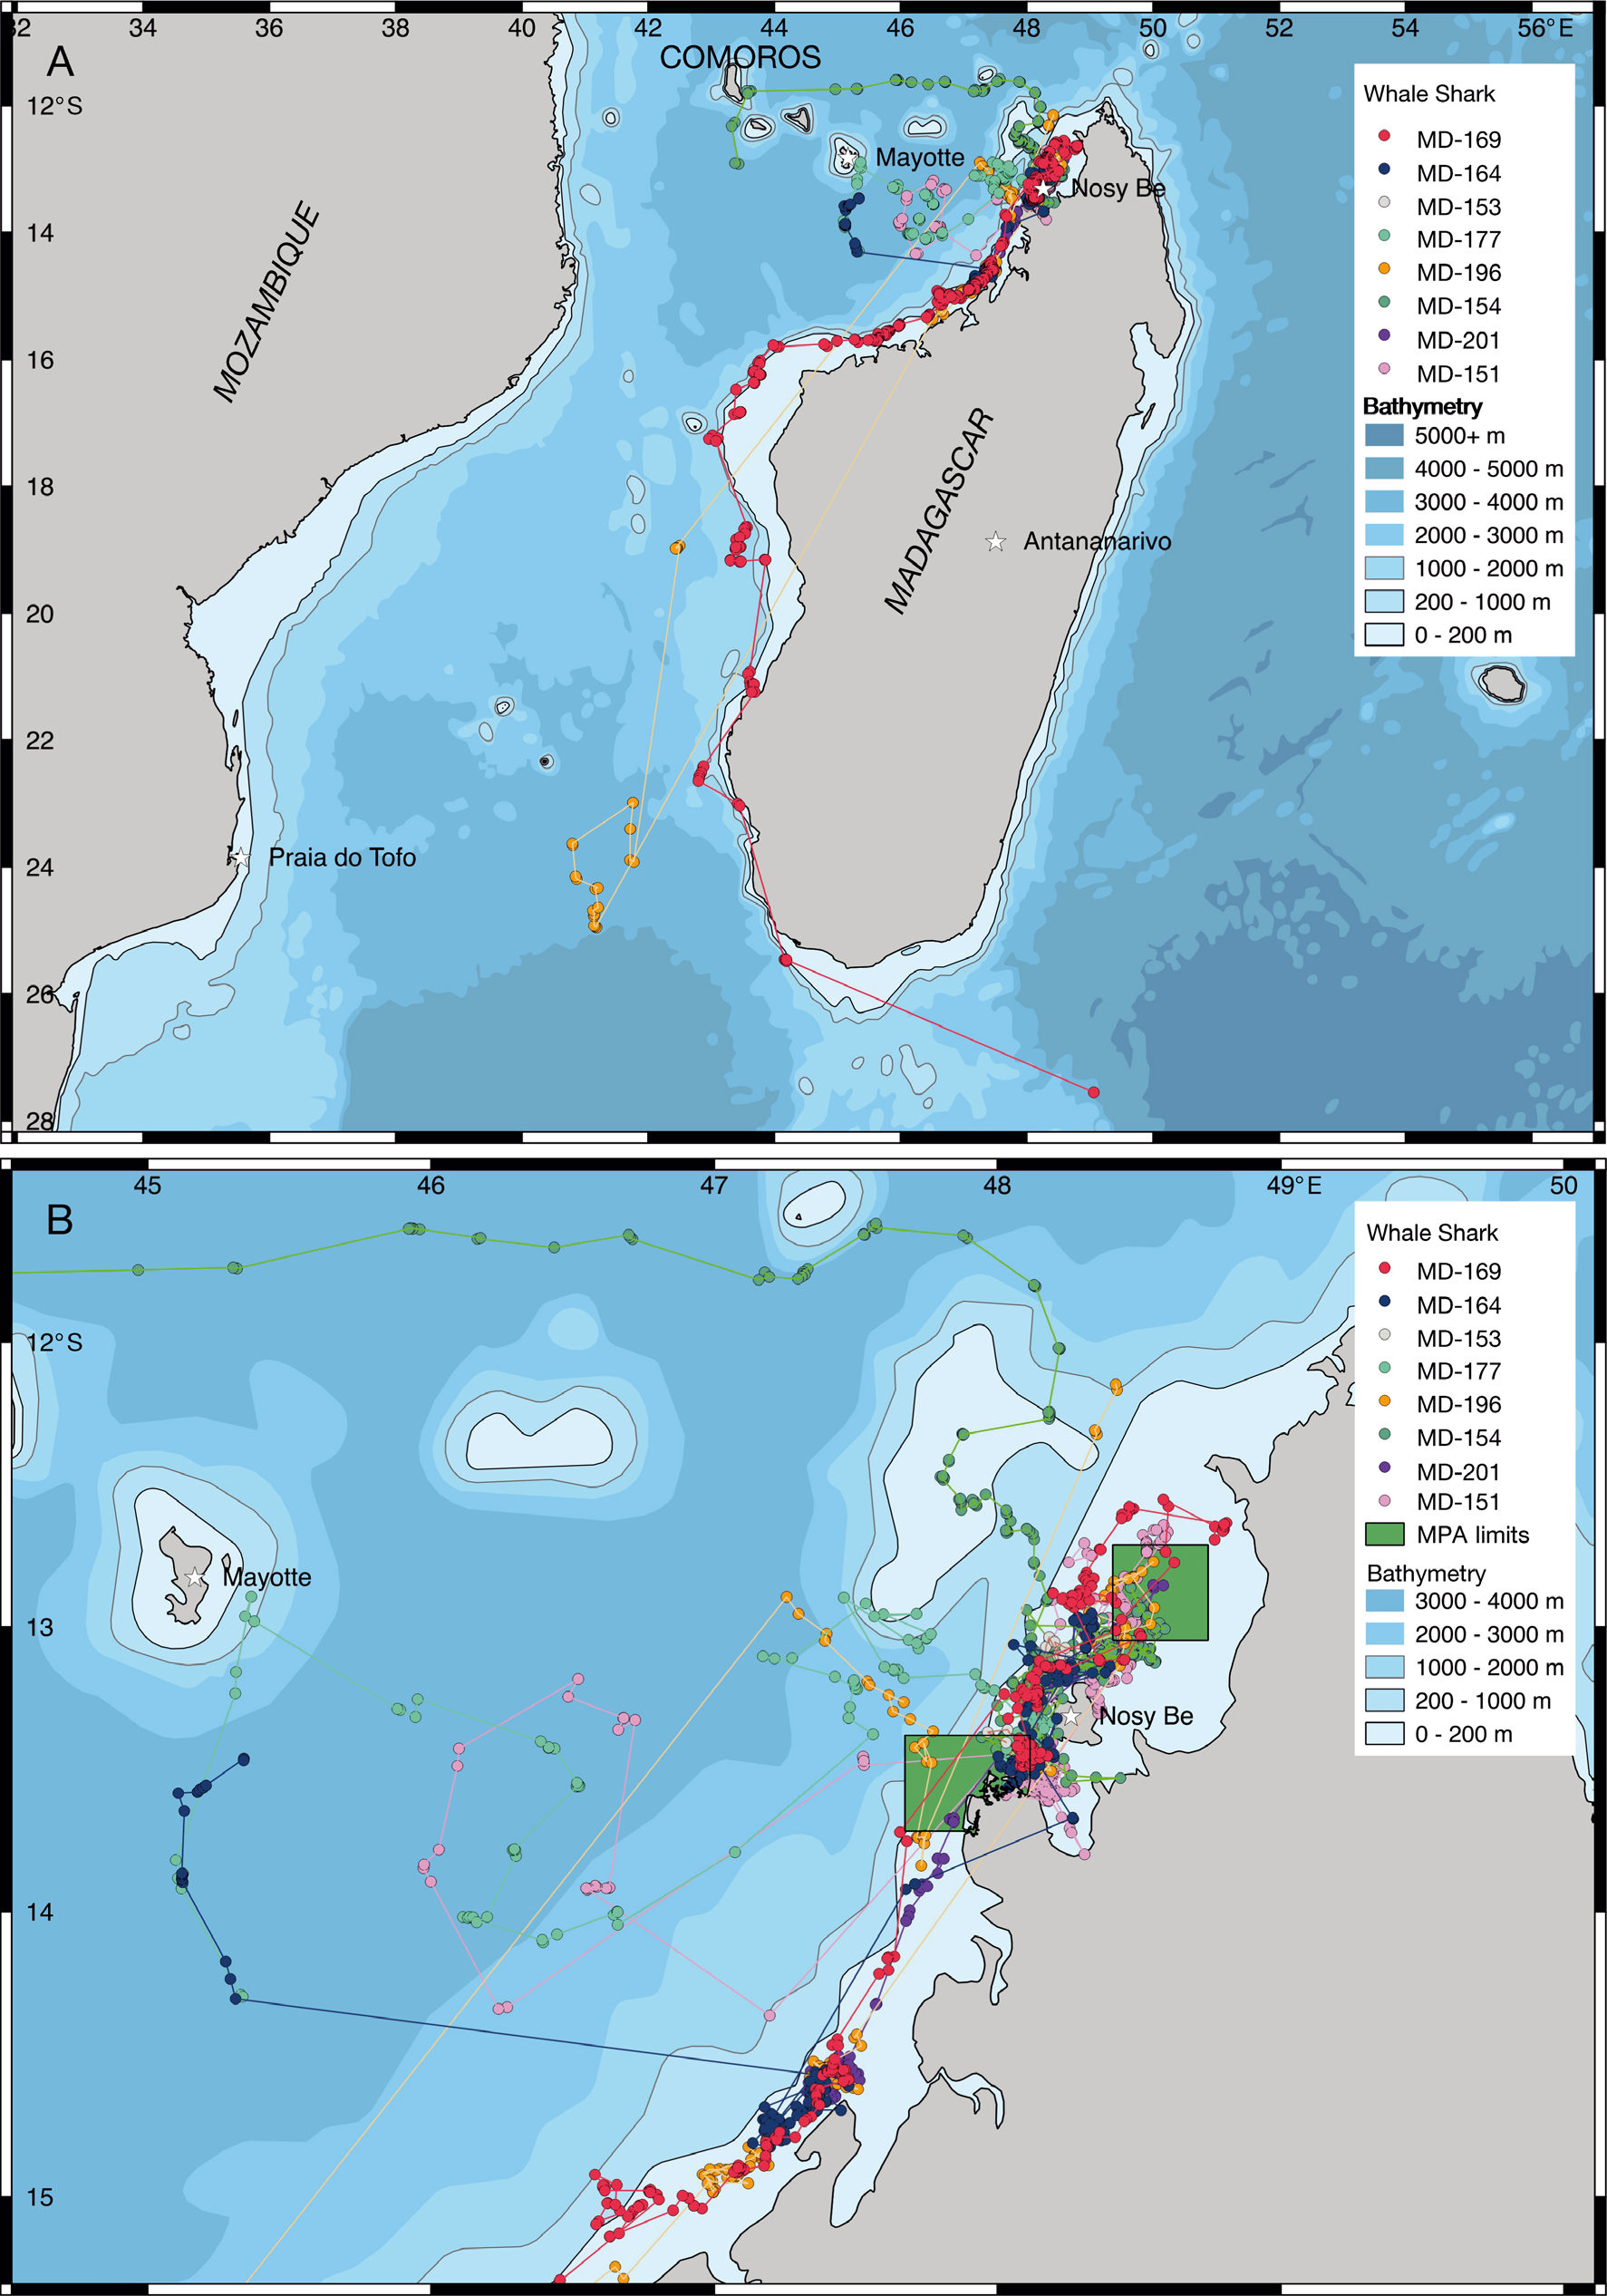 Satellite tracks of whale sharks tagged in Nosy Be. Green squares show the Marine protected areas close to Madagascar. (Credits Madagascar Whale Shark Project/Marine Megafauna Foundation)